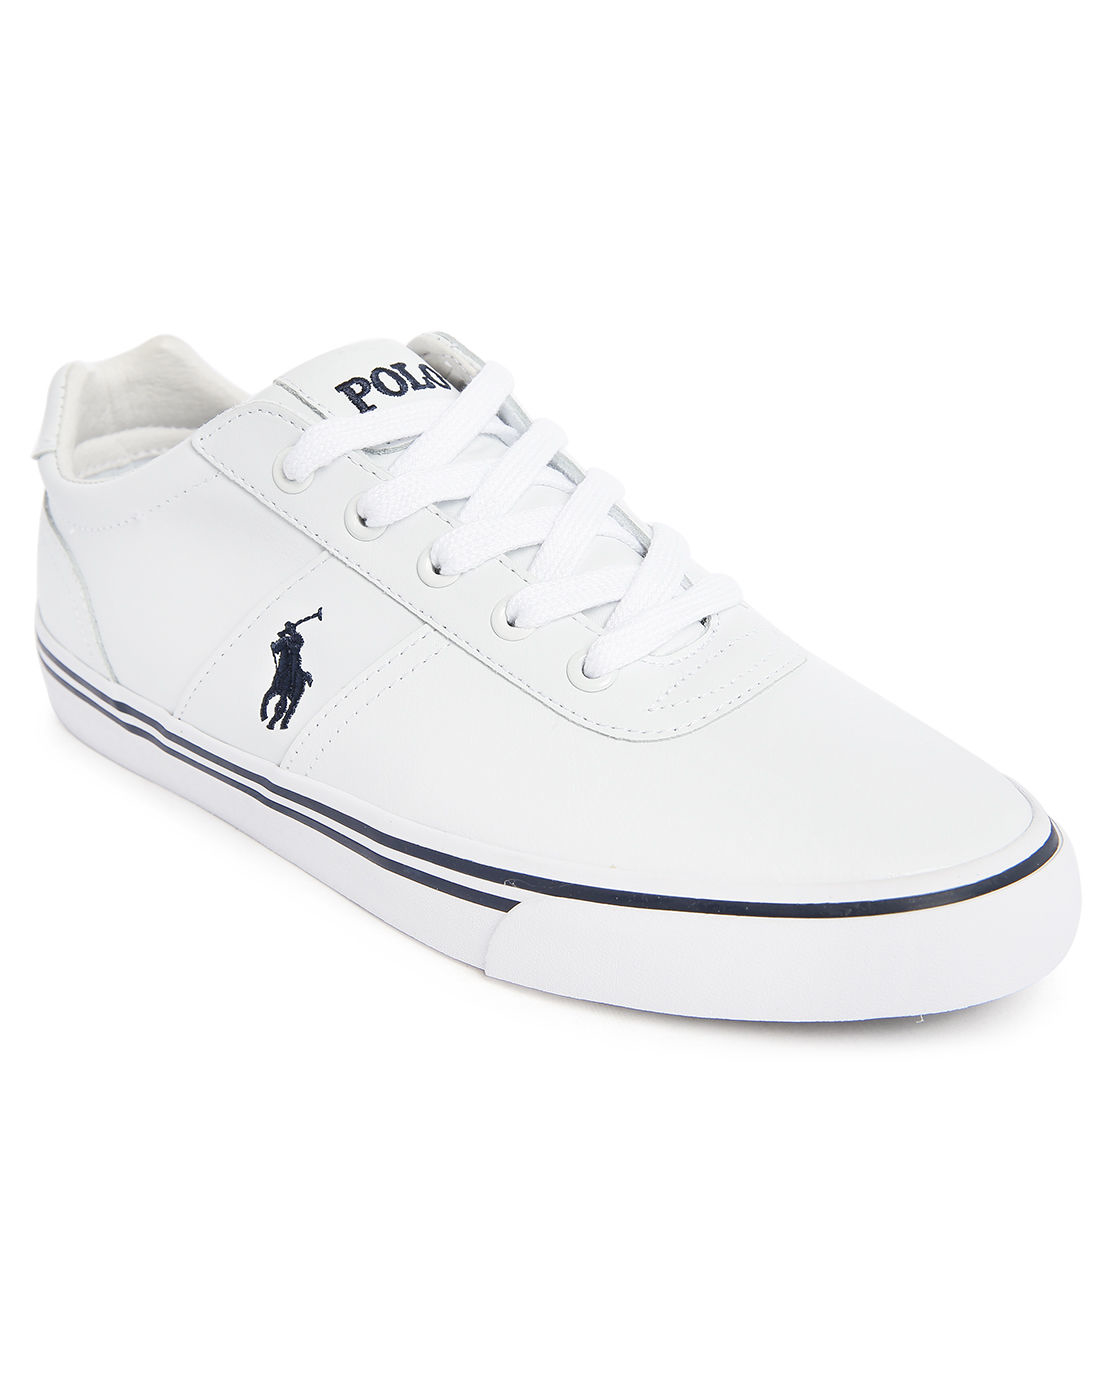 polo ralph hanford mono white leather sneakers in white for lyst